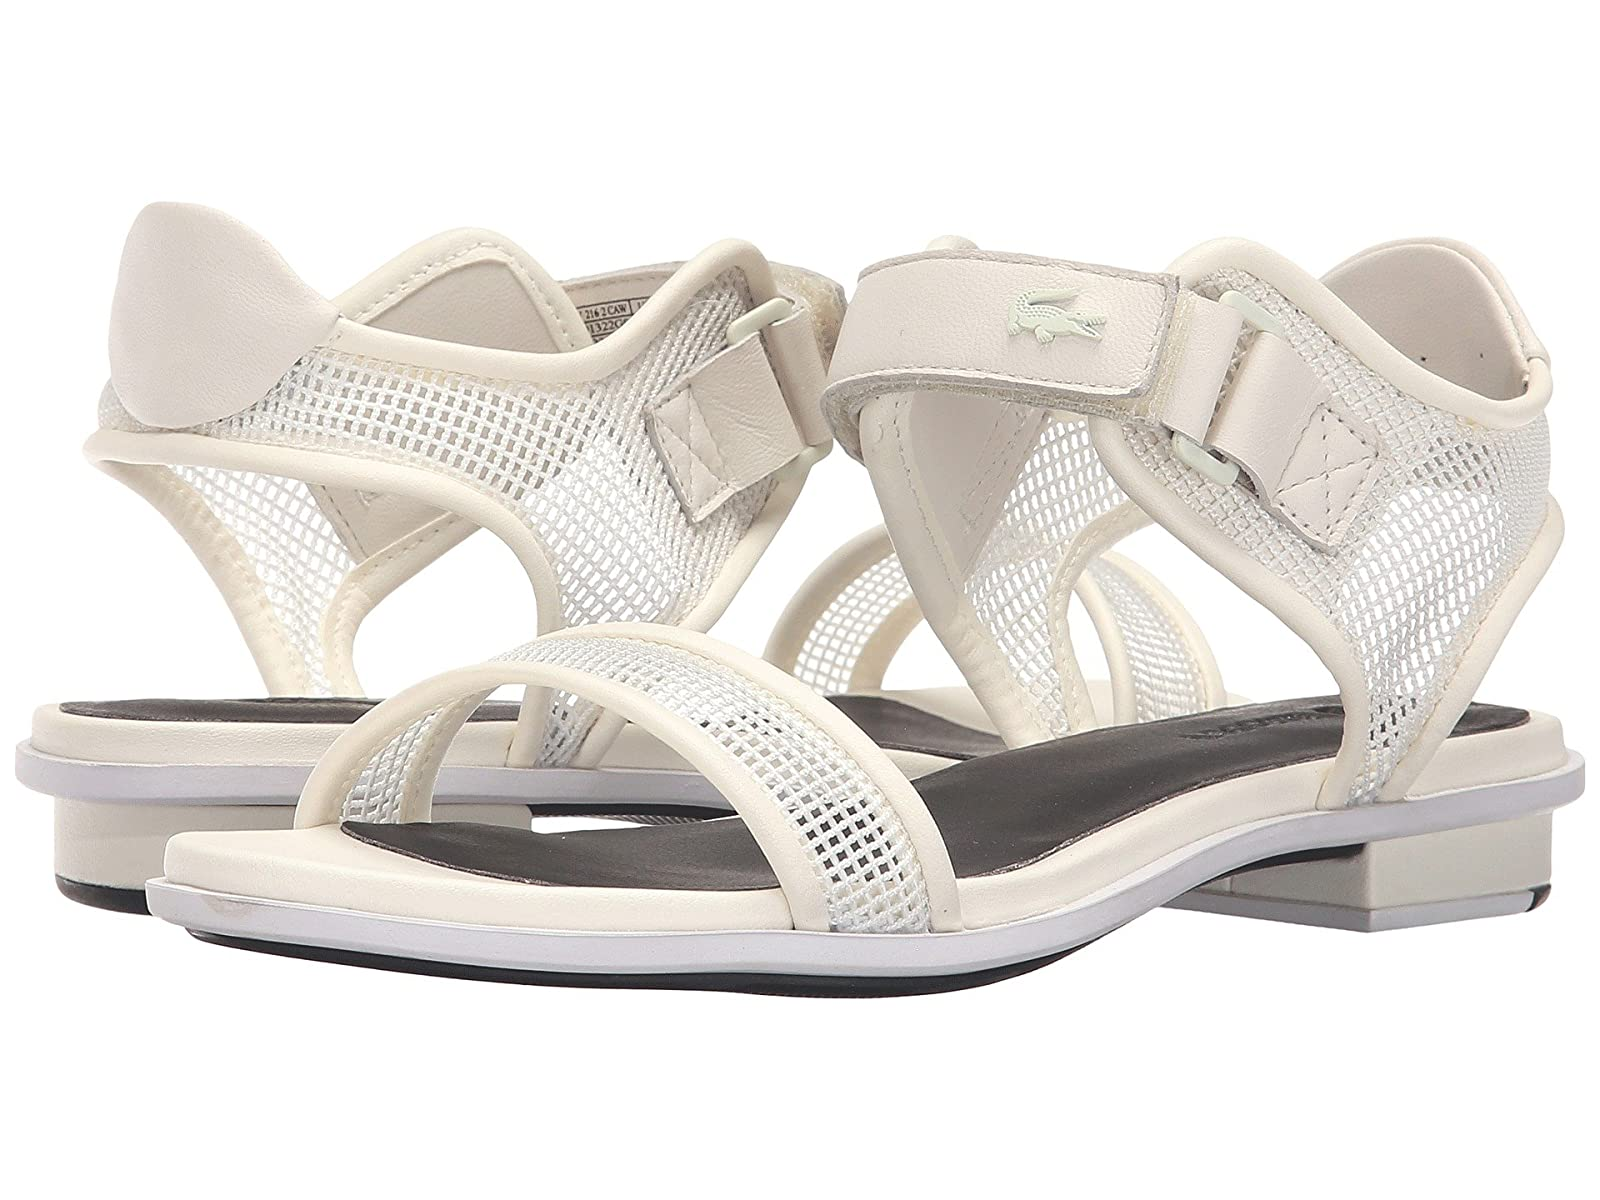 Lacoste Lonelle Low Sandal 216 2Cheap and distinctive eye-catching shoes